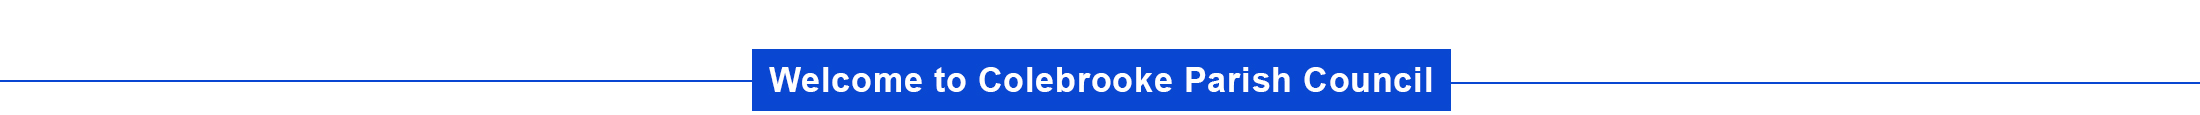 Header Image for Colebrooke Parish Council